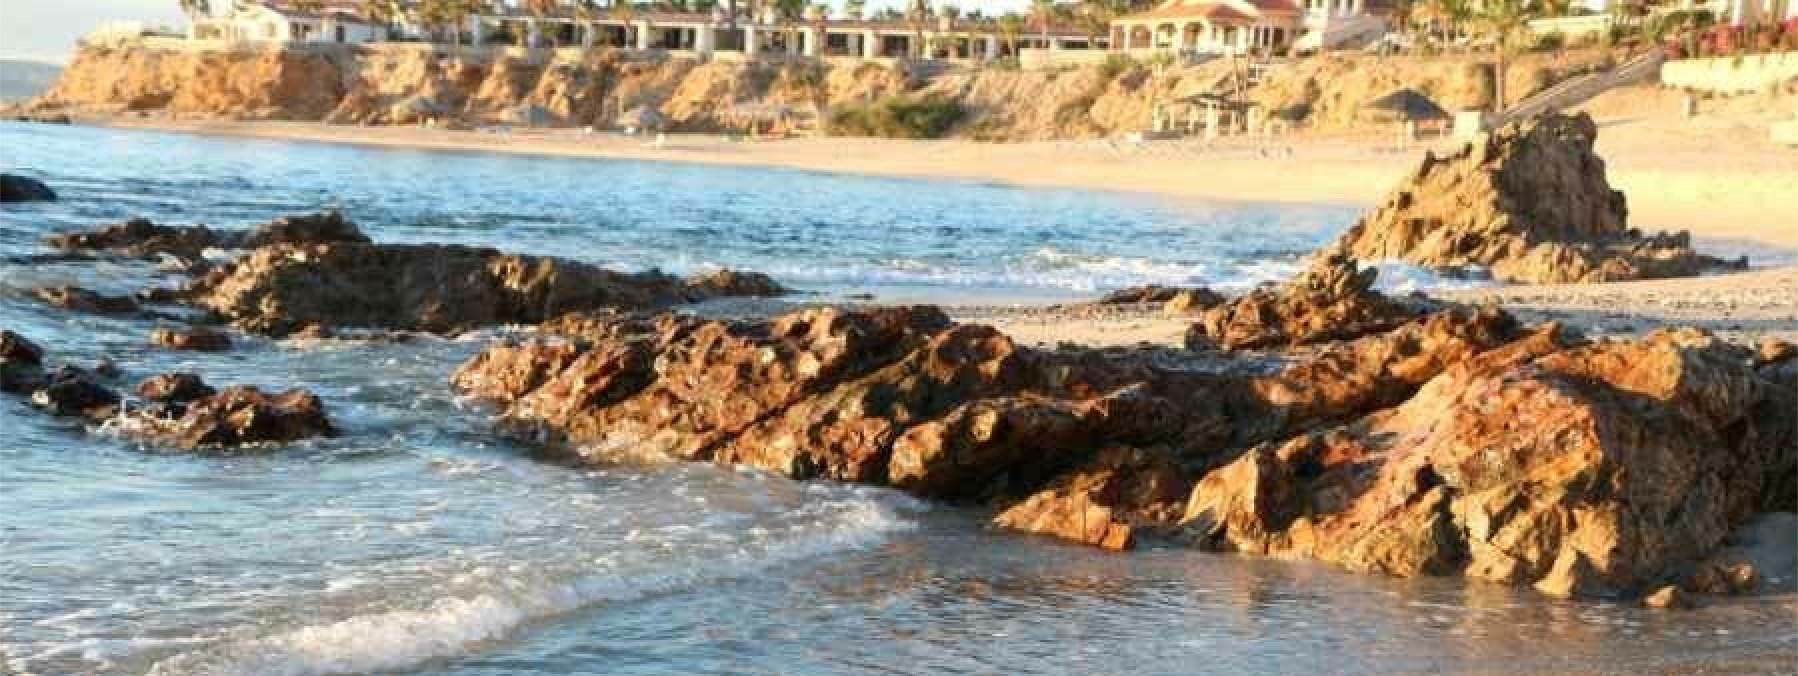 Low tide exposing an eroded sandstone dike in Southern California. Image courtesy of project interviewees.